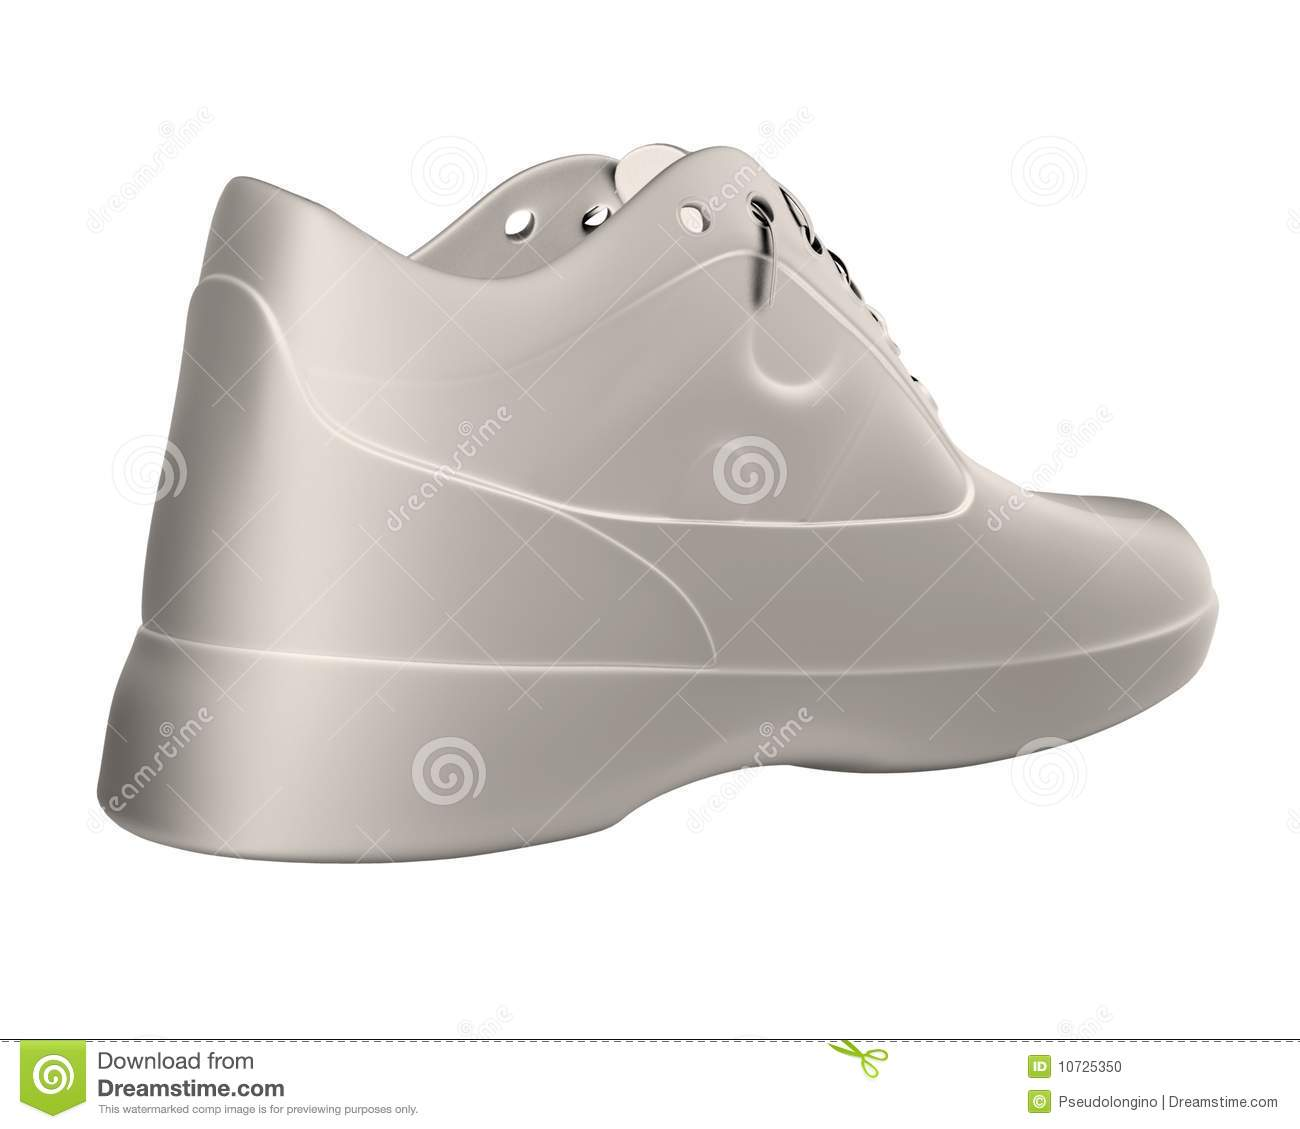 Shoe render stock illustration  Illustration of rendering